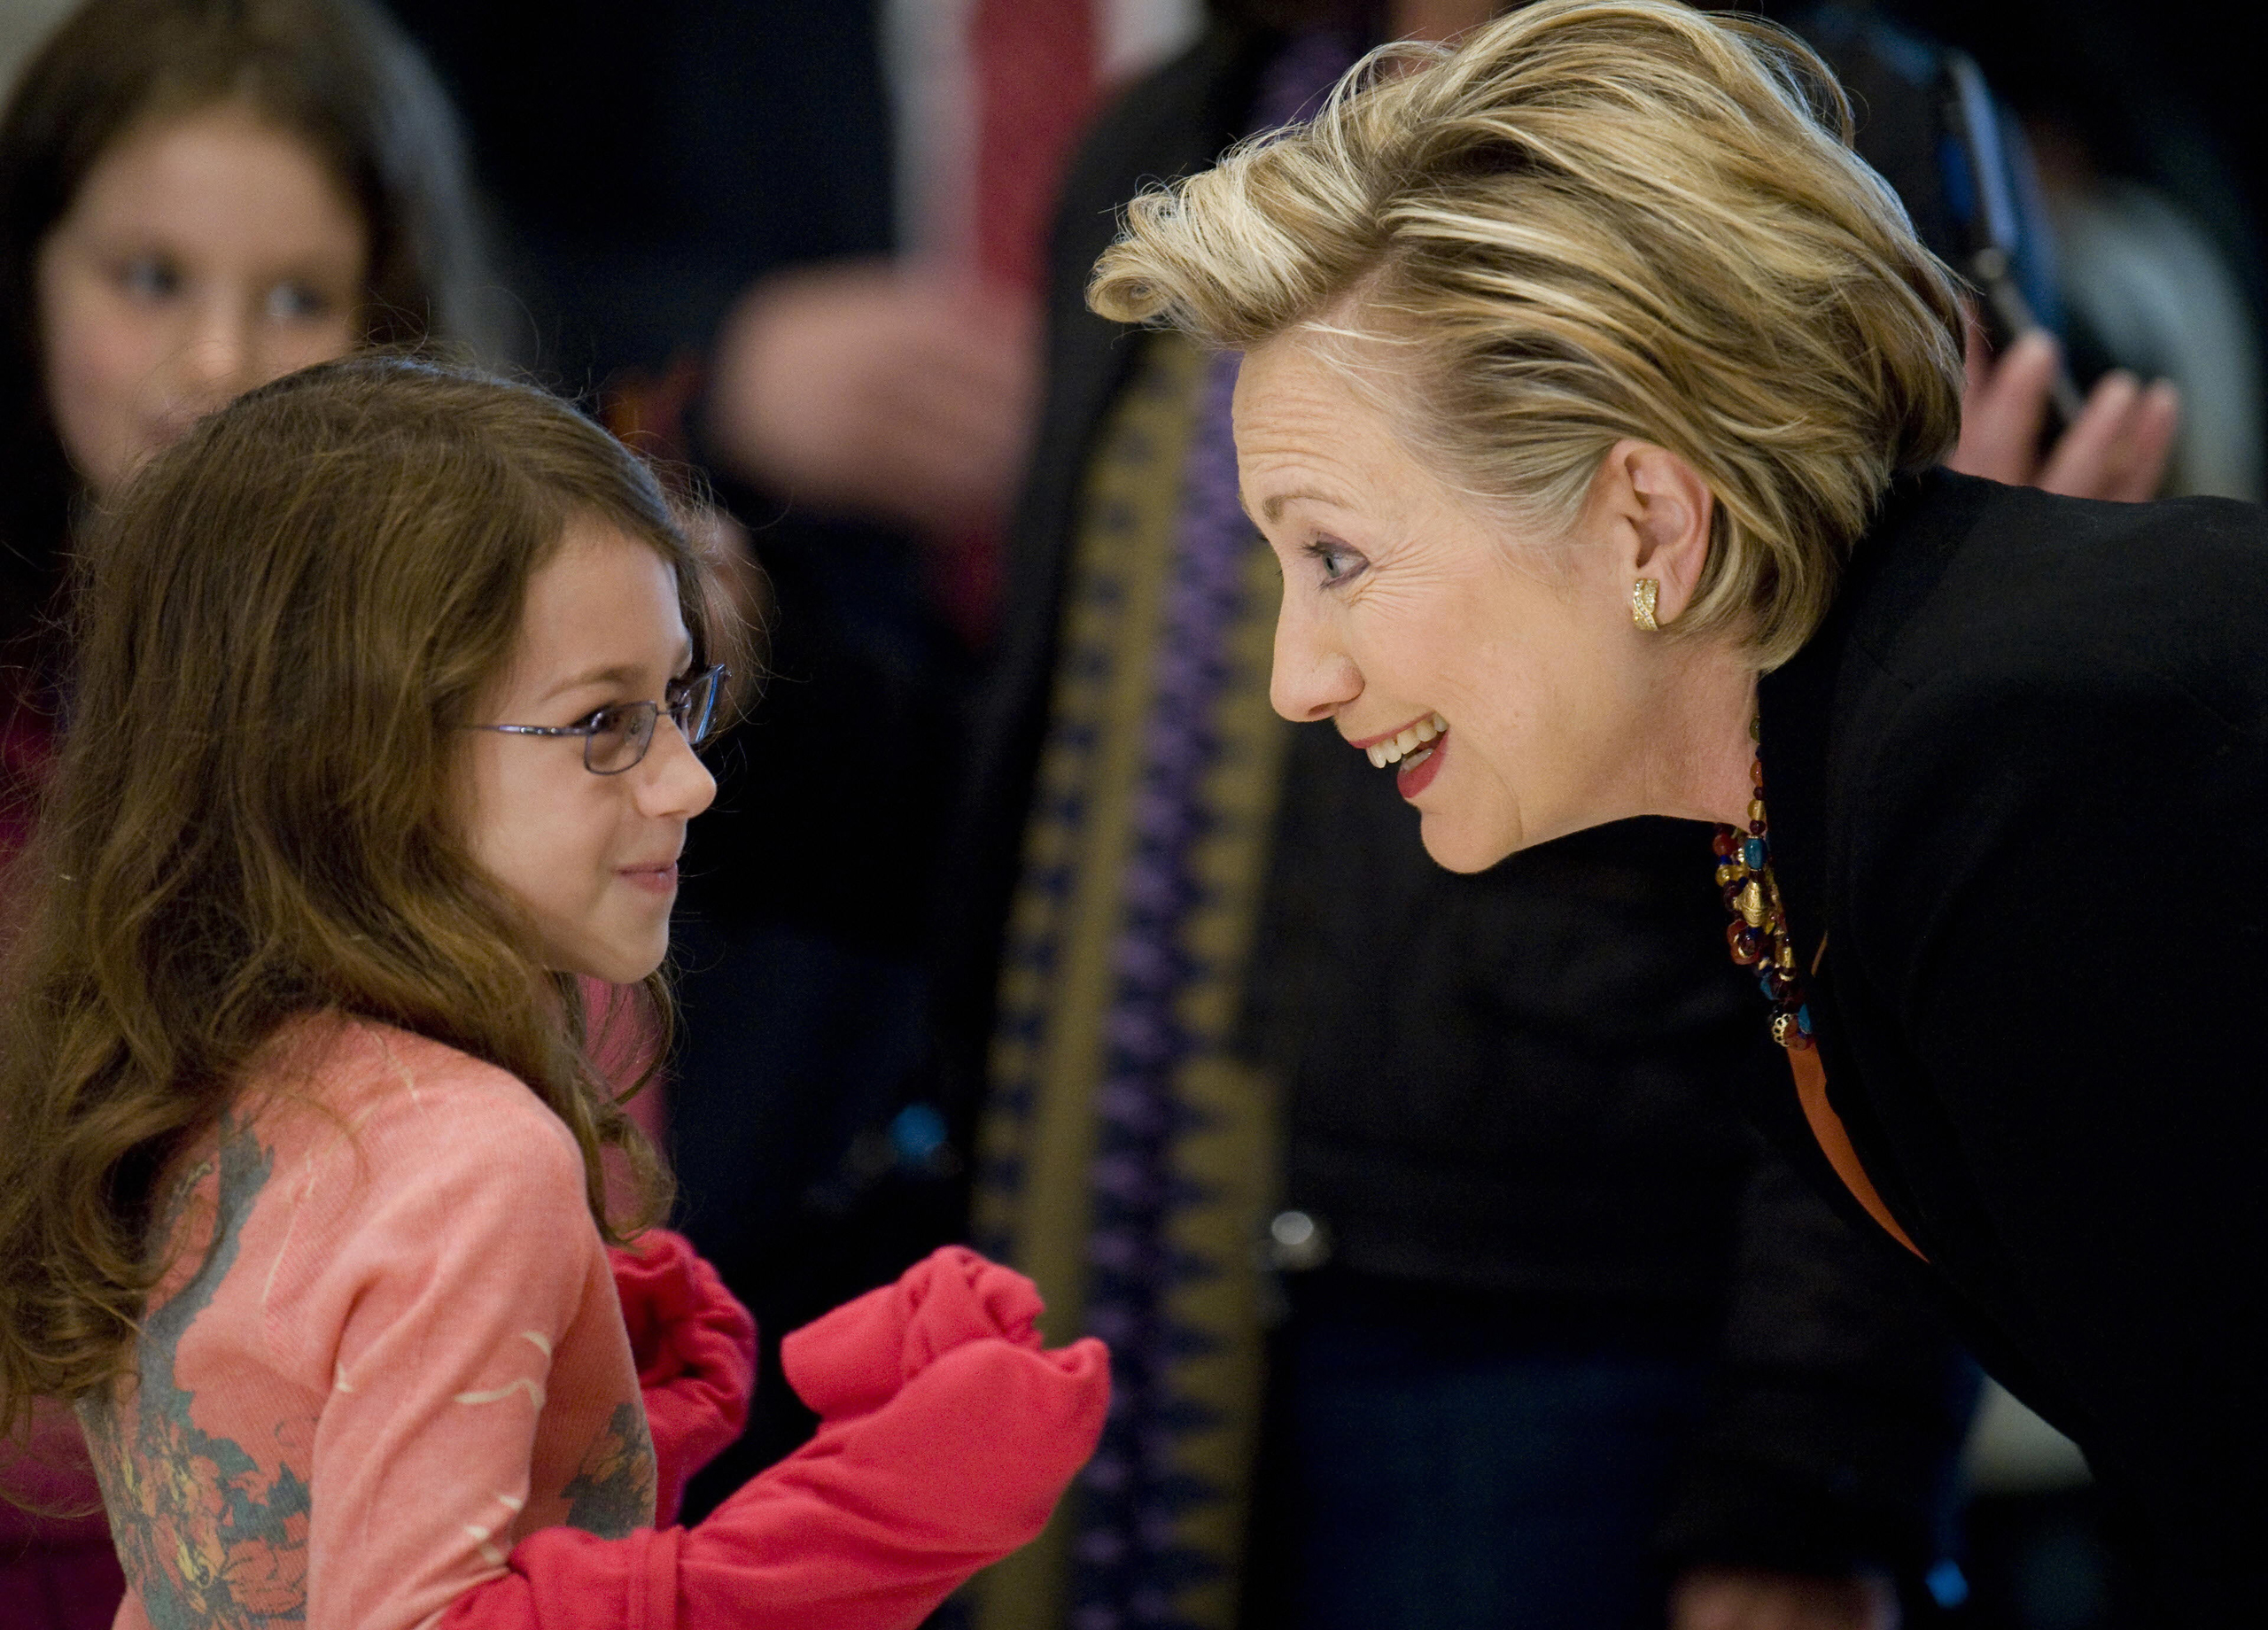 Hillary Clinton talks to a little girl at her polling station before voting in the 2008 Presidential Election in Chappaqua, New York, on Nov. 4, 2008.